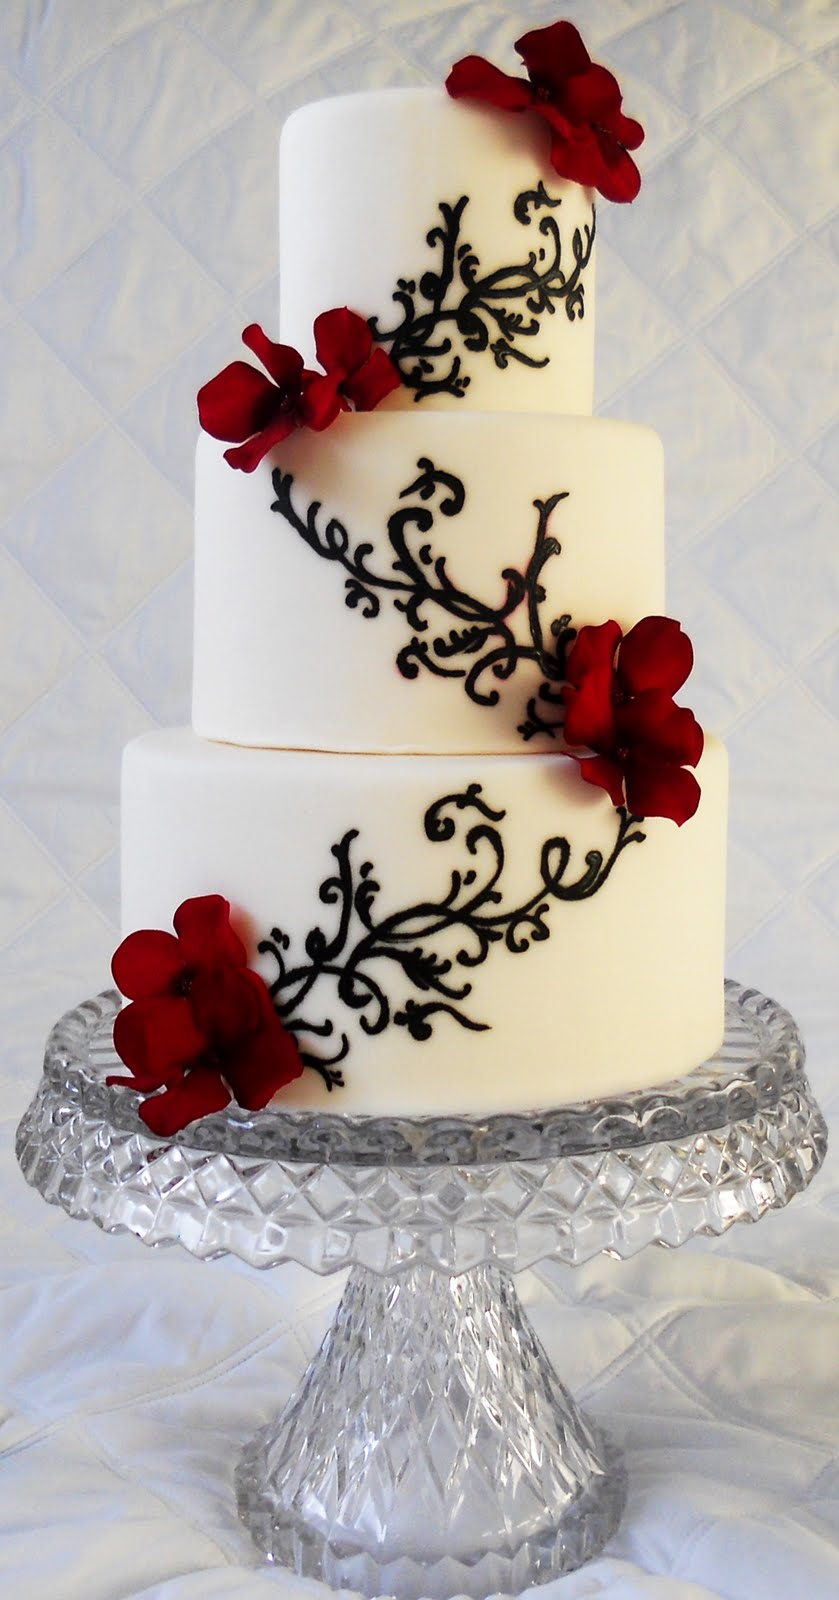 wedding cakes black white and red memorable wedding find the best black and white 23903